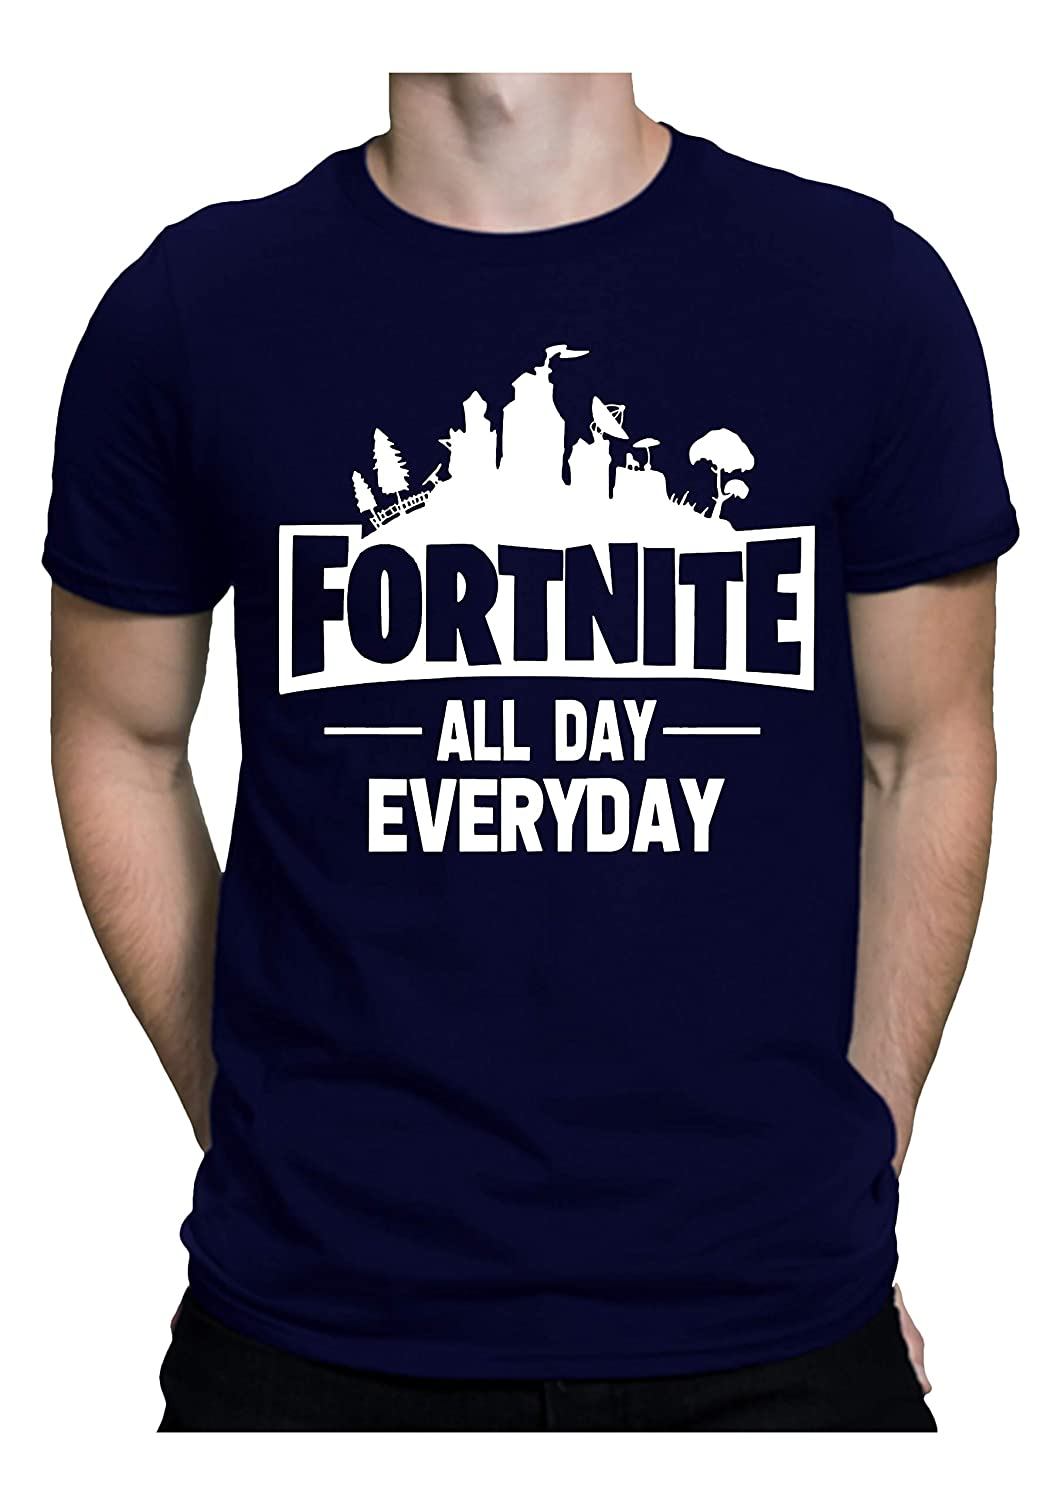 f309347b WowBoss Men's Cotton Graphic Printed Half Sleeve T-Shirt - Fortnite All Day  Everyday: Amazon.in: Clothing & Accessories